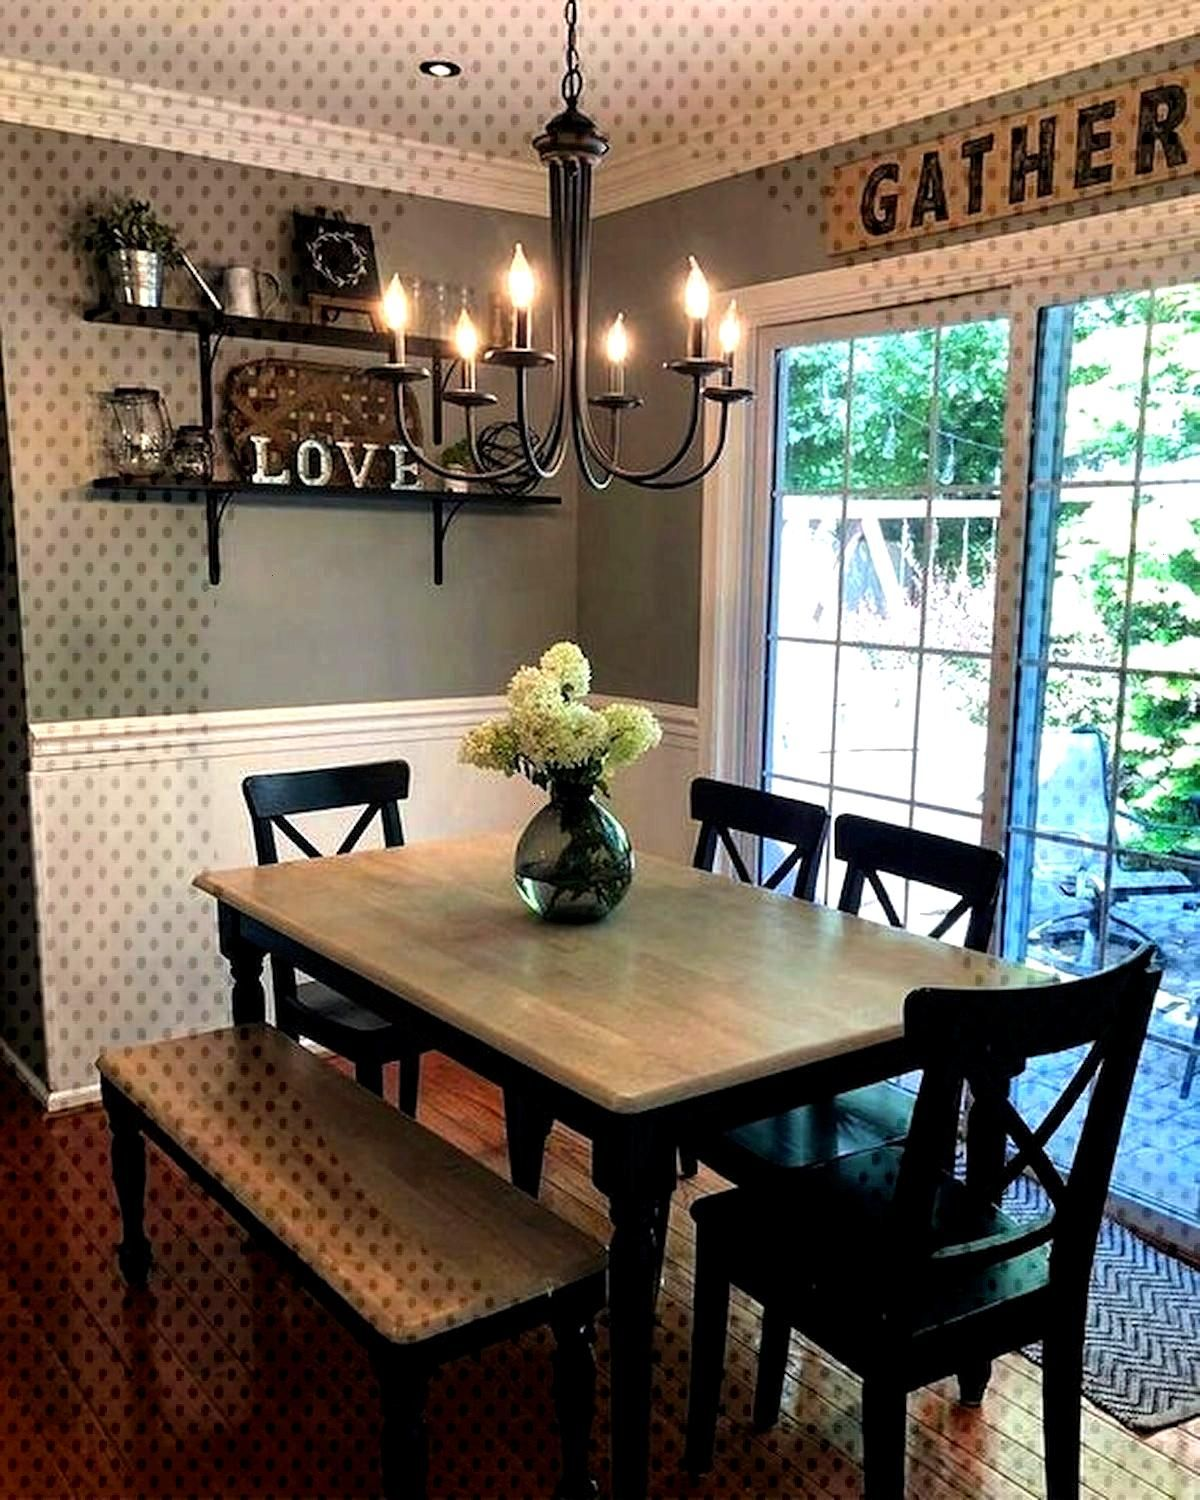 55 Stunning DIY Projects Furniture Tables Dining Rooms Design Ideas